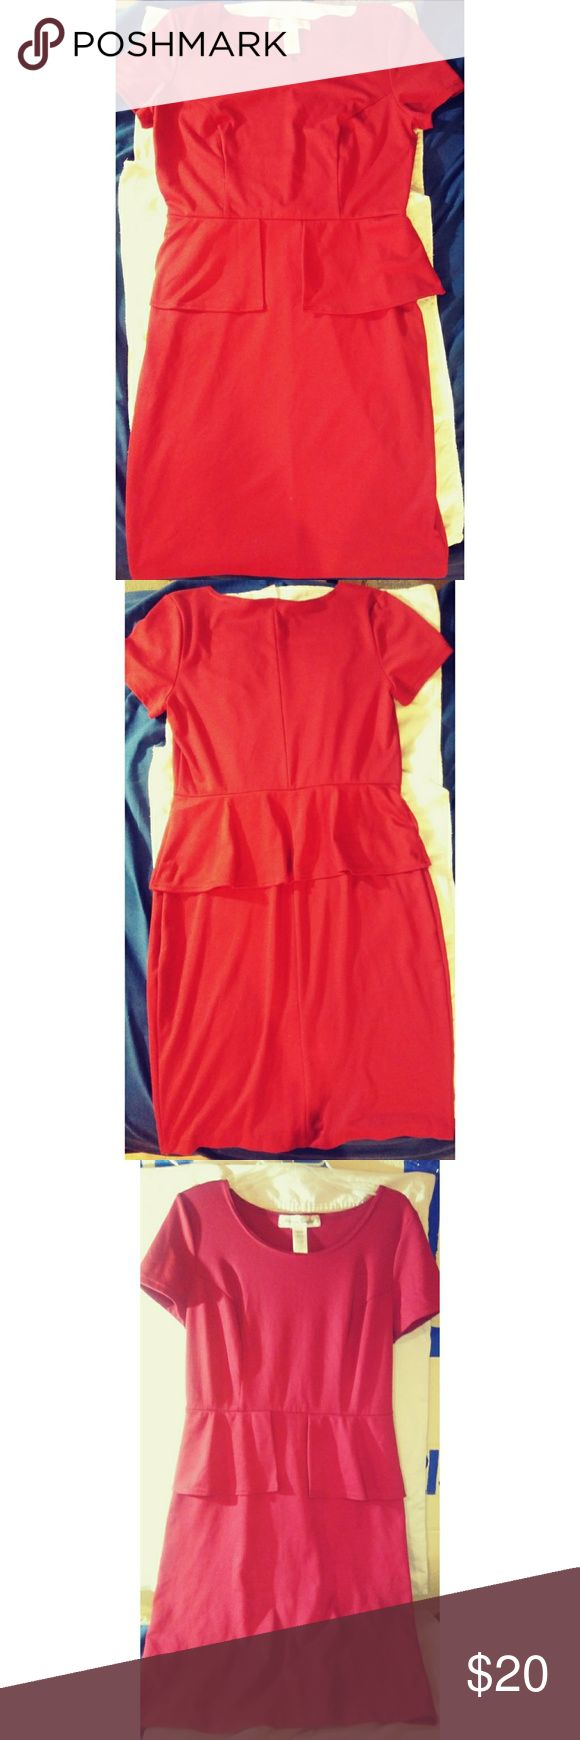 Peplum Dress Offers Welcomed  Bundles welcomed and discounted Red Peplum dress worn once In excellent condition  No signs of wear at all Very versatile dress & Other Stories Dresses